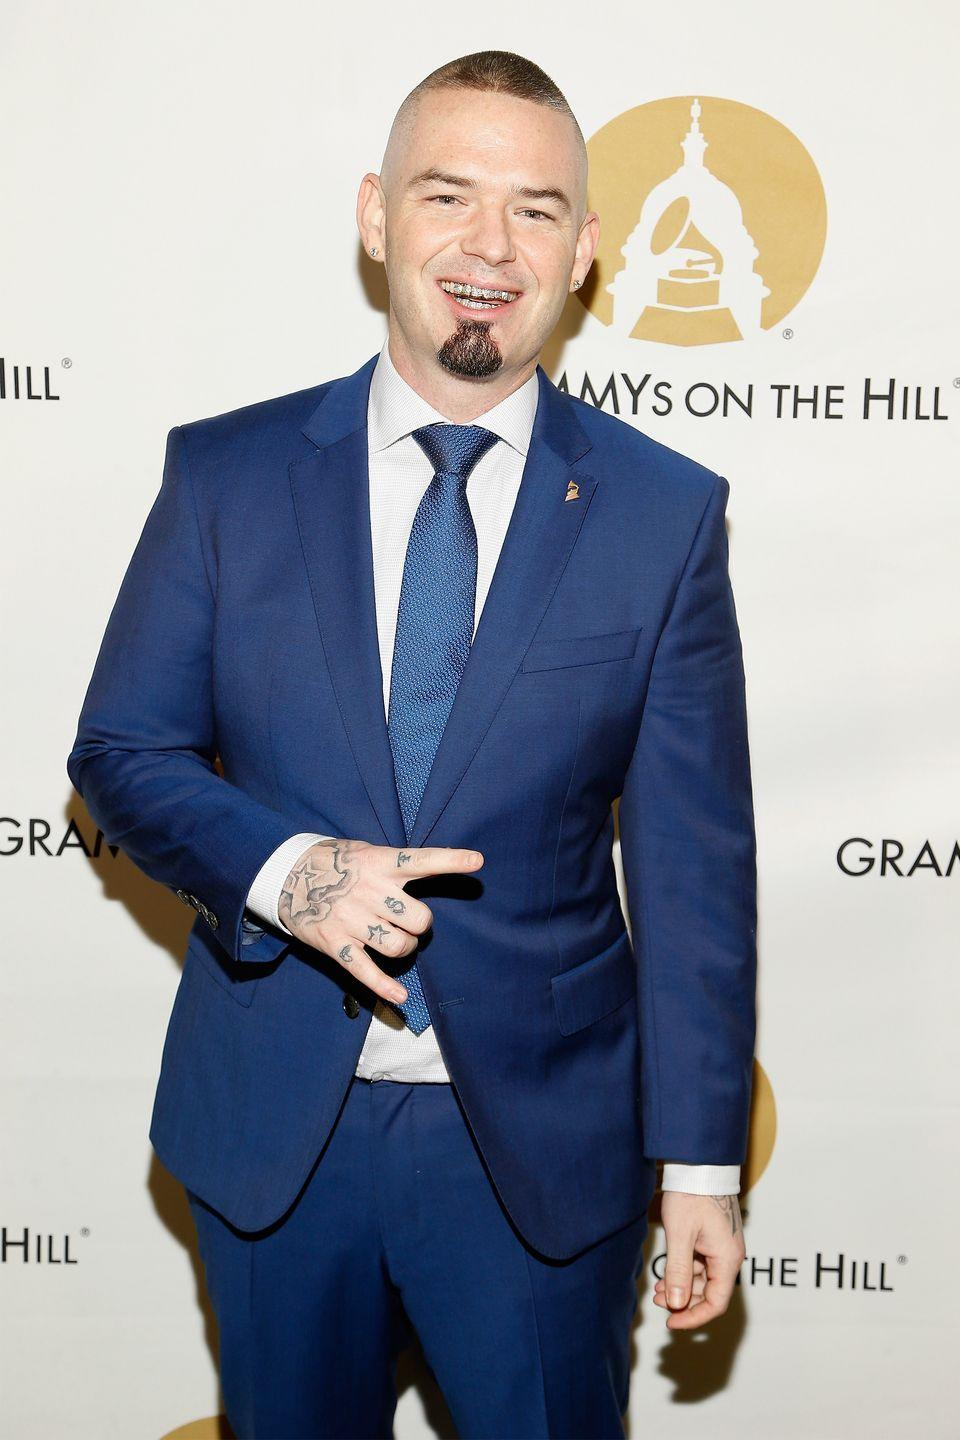 """<p>The rapper had gastric sleeve surgery in 2010. He started at 320 pounds and lost 100 post-procedure, after which he told <em>Ozone magazine</em> (via <a href=""""https://www.billboard.com/articles/columns/the-juice/948872/paul-wall-talks-about-losing-100-pounds"""" rel=""""nofollow noopener"""" target=""""_blank"""" data-ylk=""""slk:Billboard"""" class=""""link rapid-noclick-resp"""">Billboard</a>): """"I feel like I got my life back.""""</p>"""